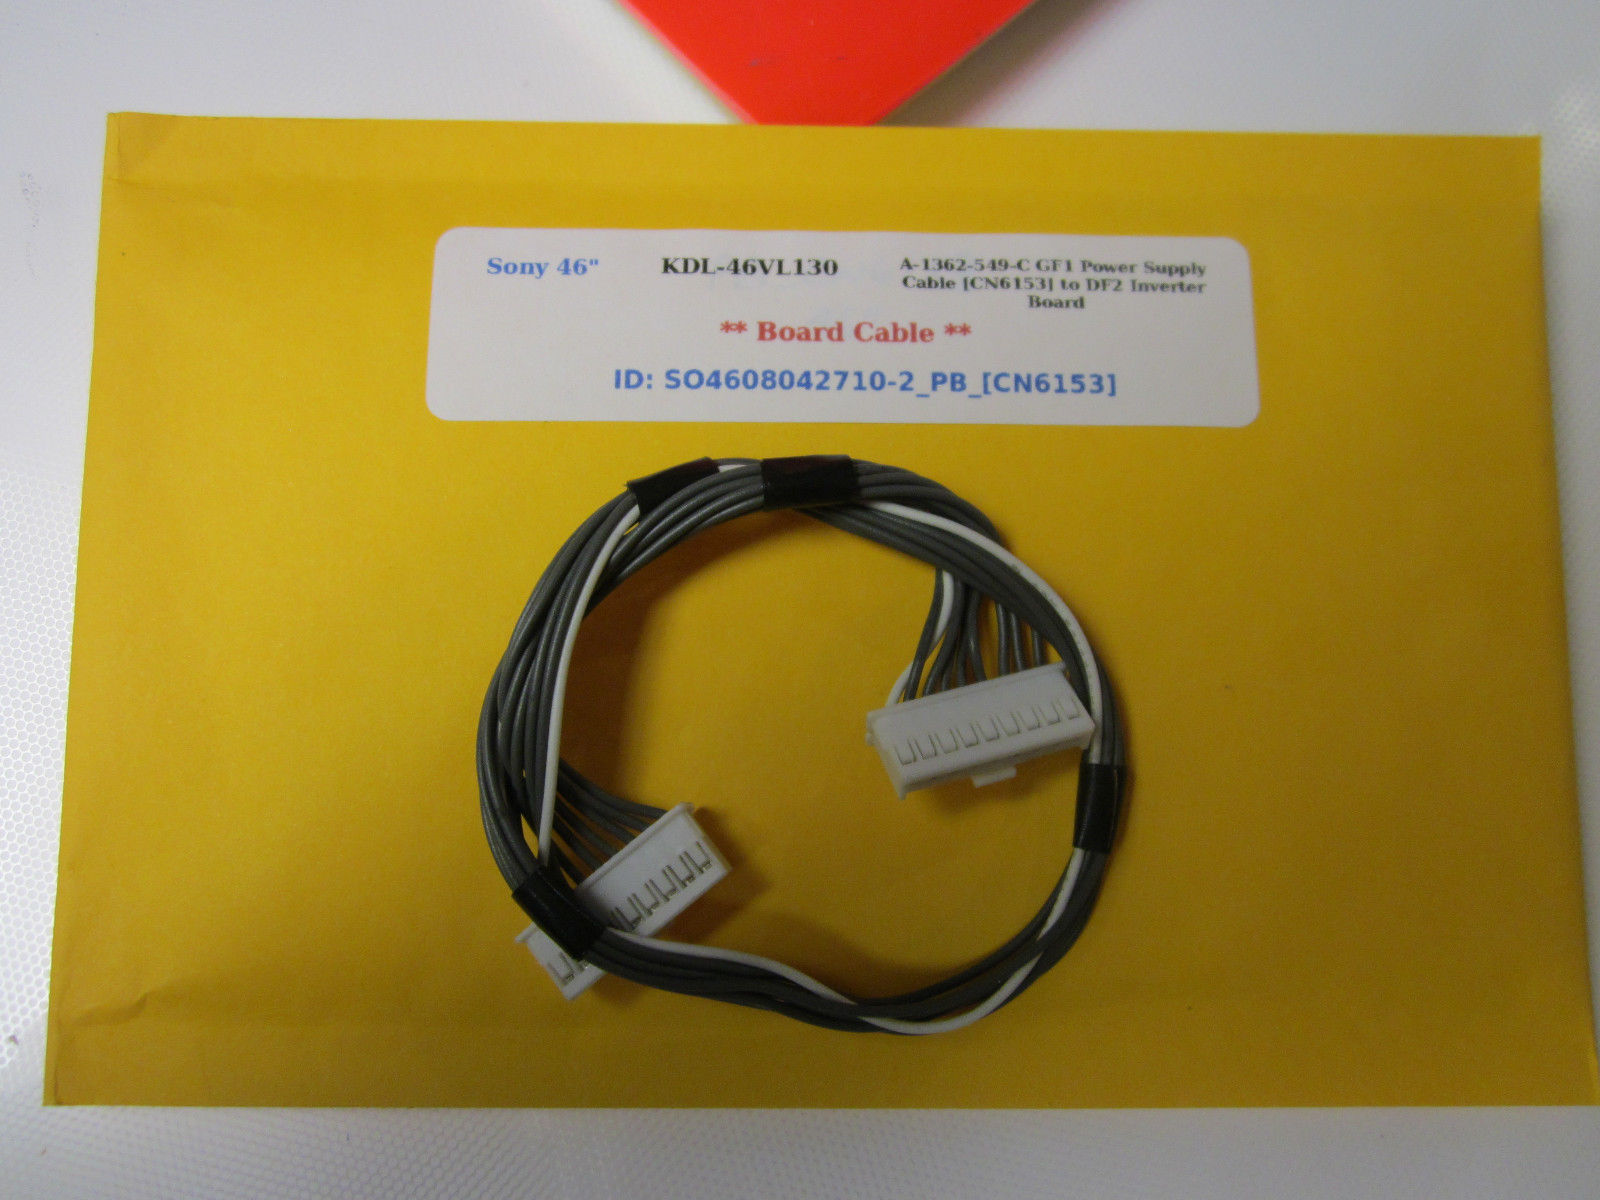 "Primary image for Sony 46"" KDL-46VL130 A-1362-549-C GF1 Power Supply Cable [CN6153] to DF2 Inverte"